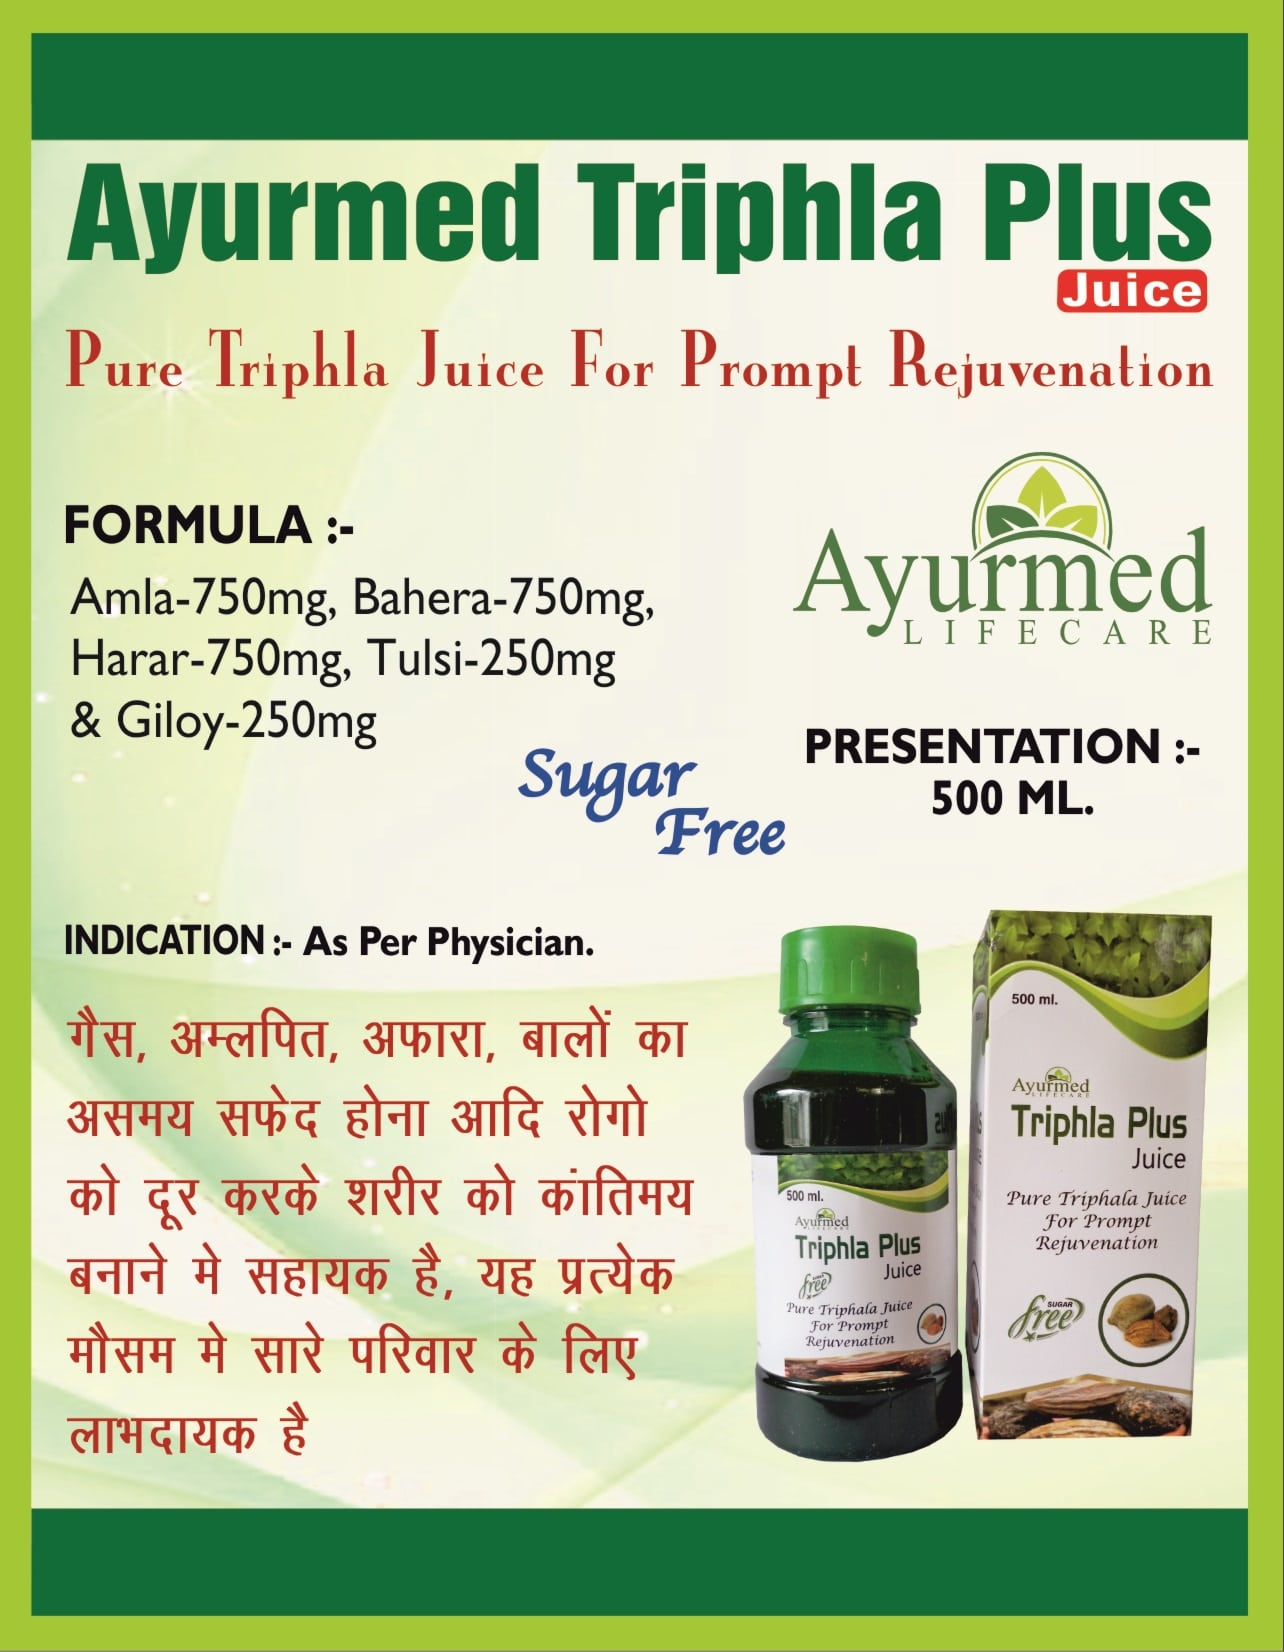 Ayurmed-Triphla-plus-Juice